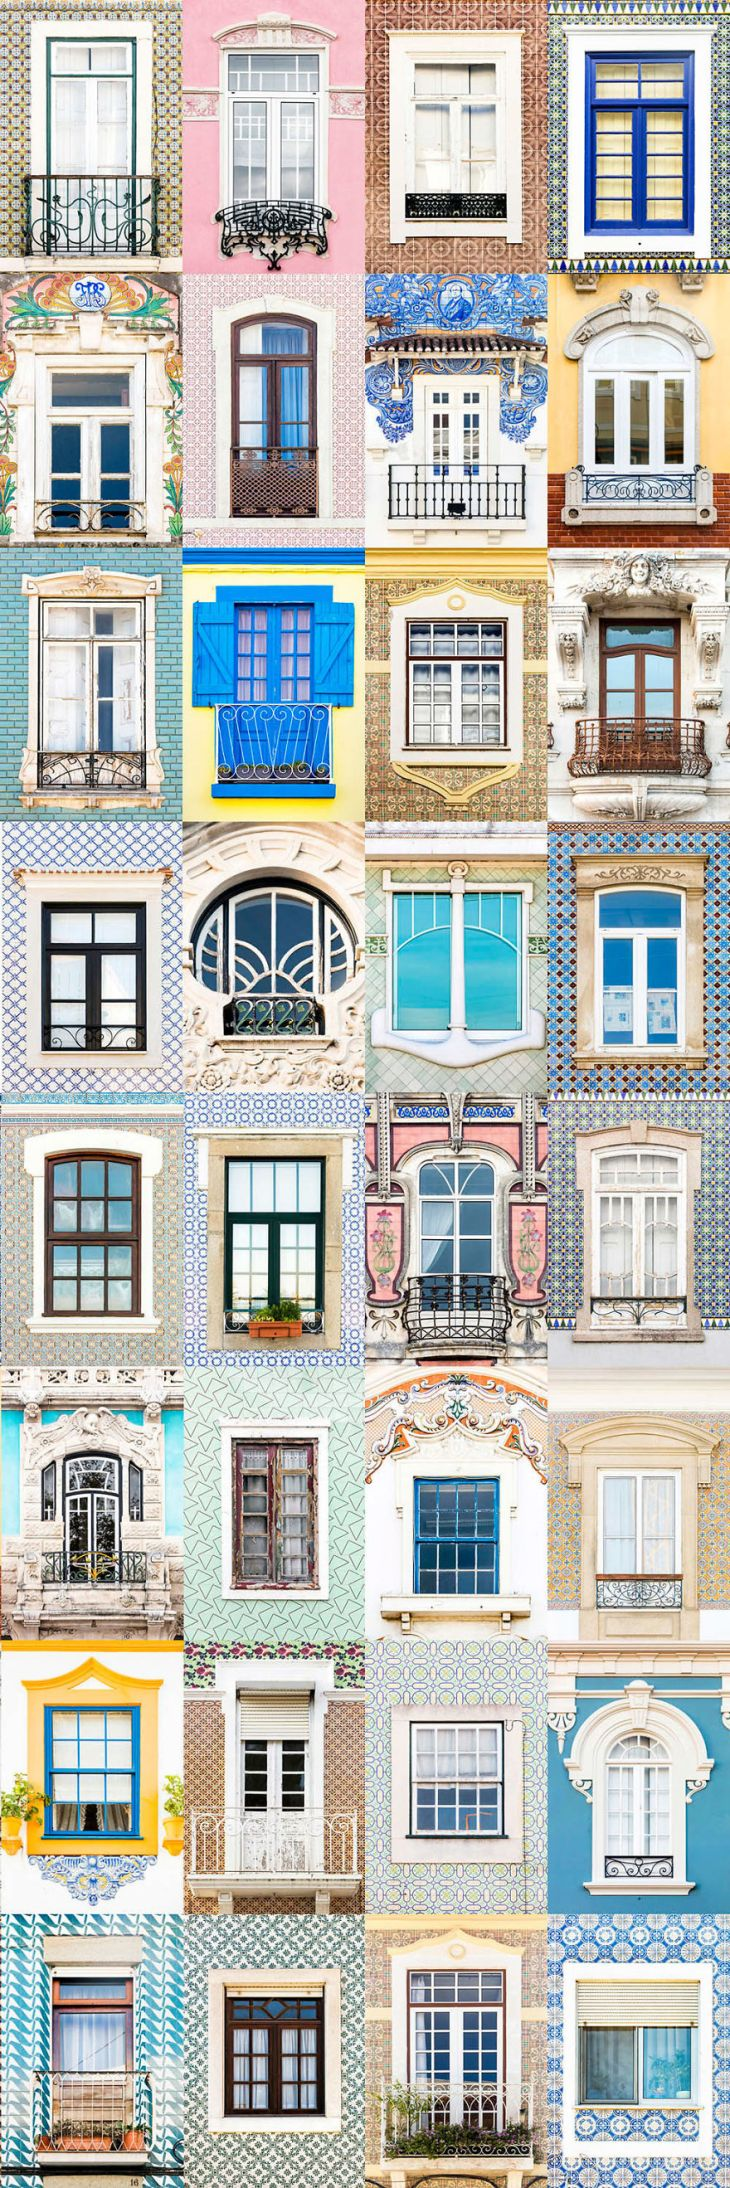 I-traveled-all-over-portugal-to-photograph-windows-more-than-3200-59edaf52b3fc2__880